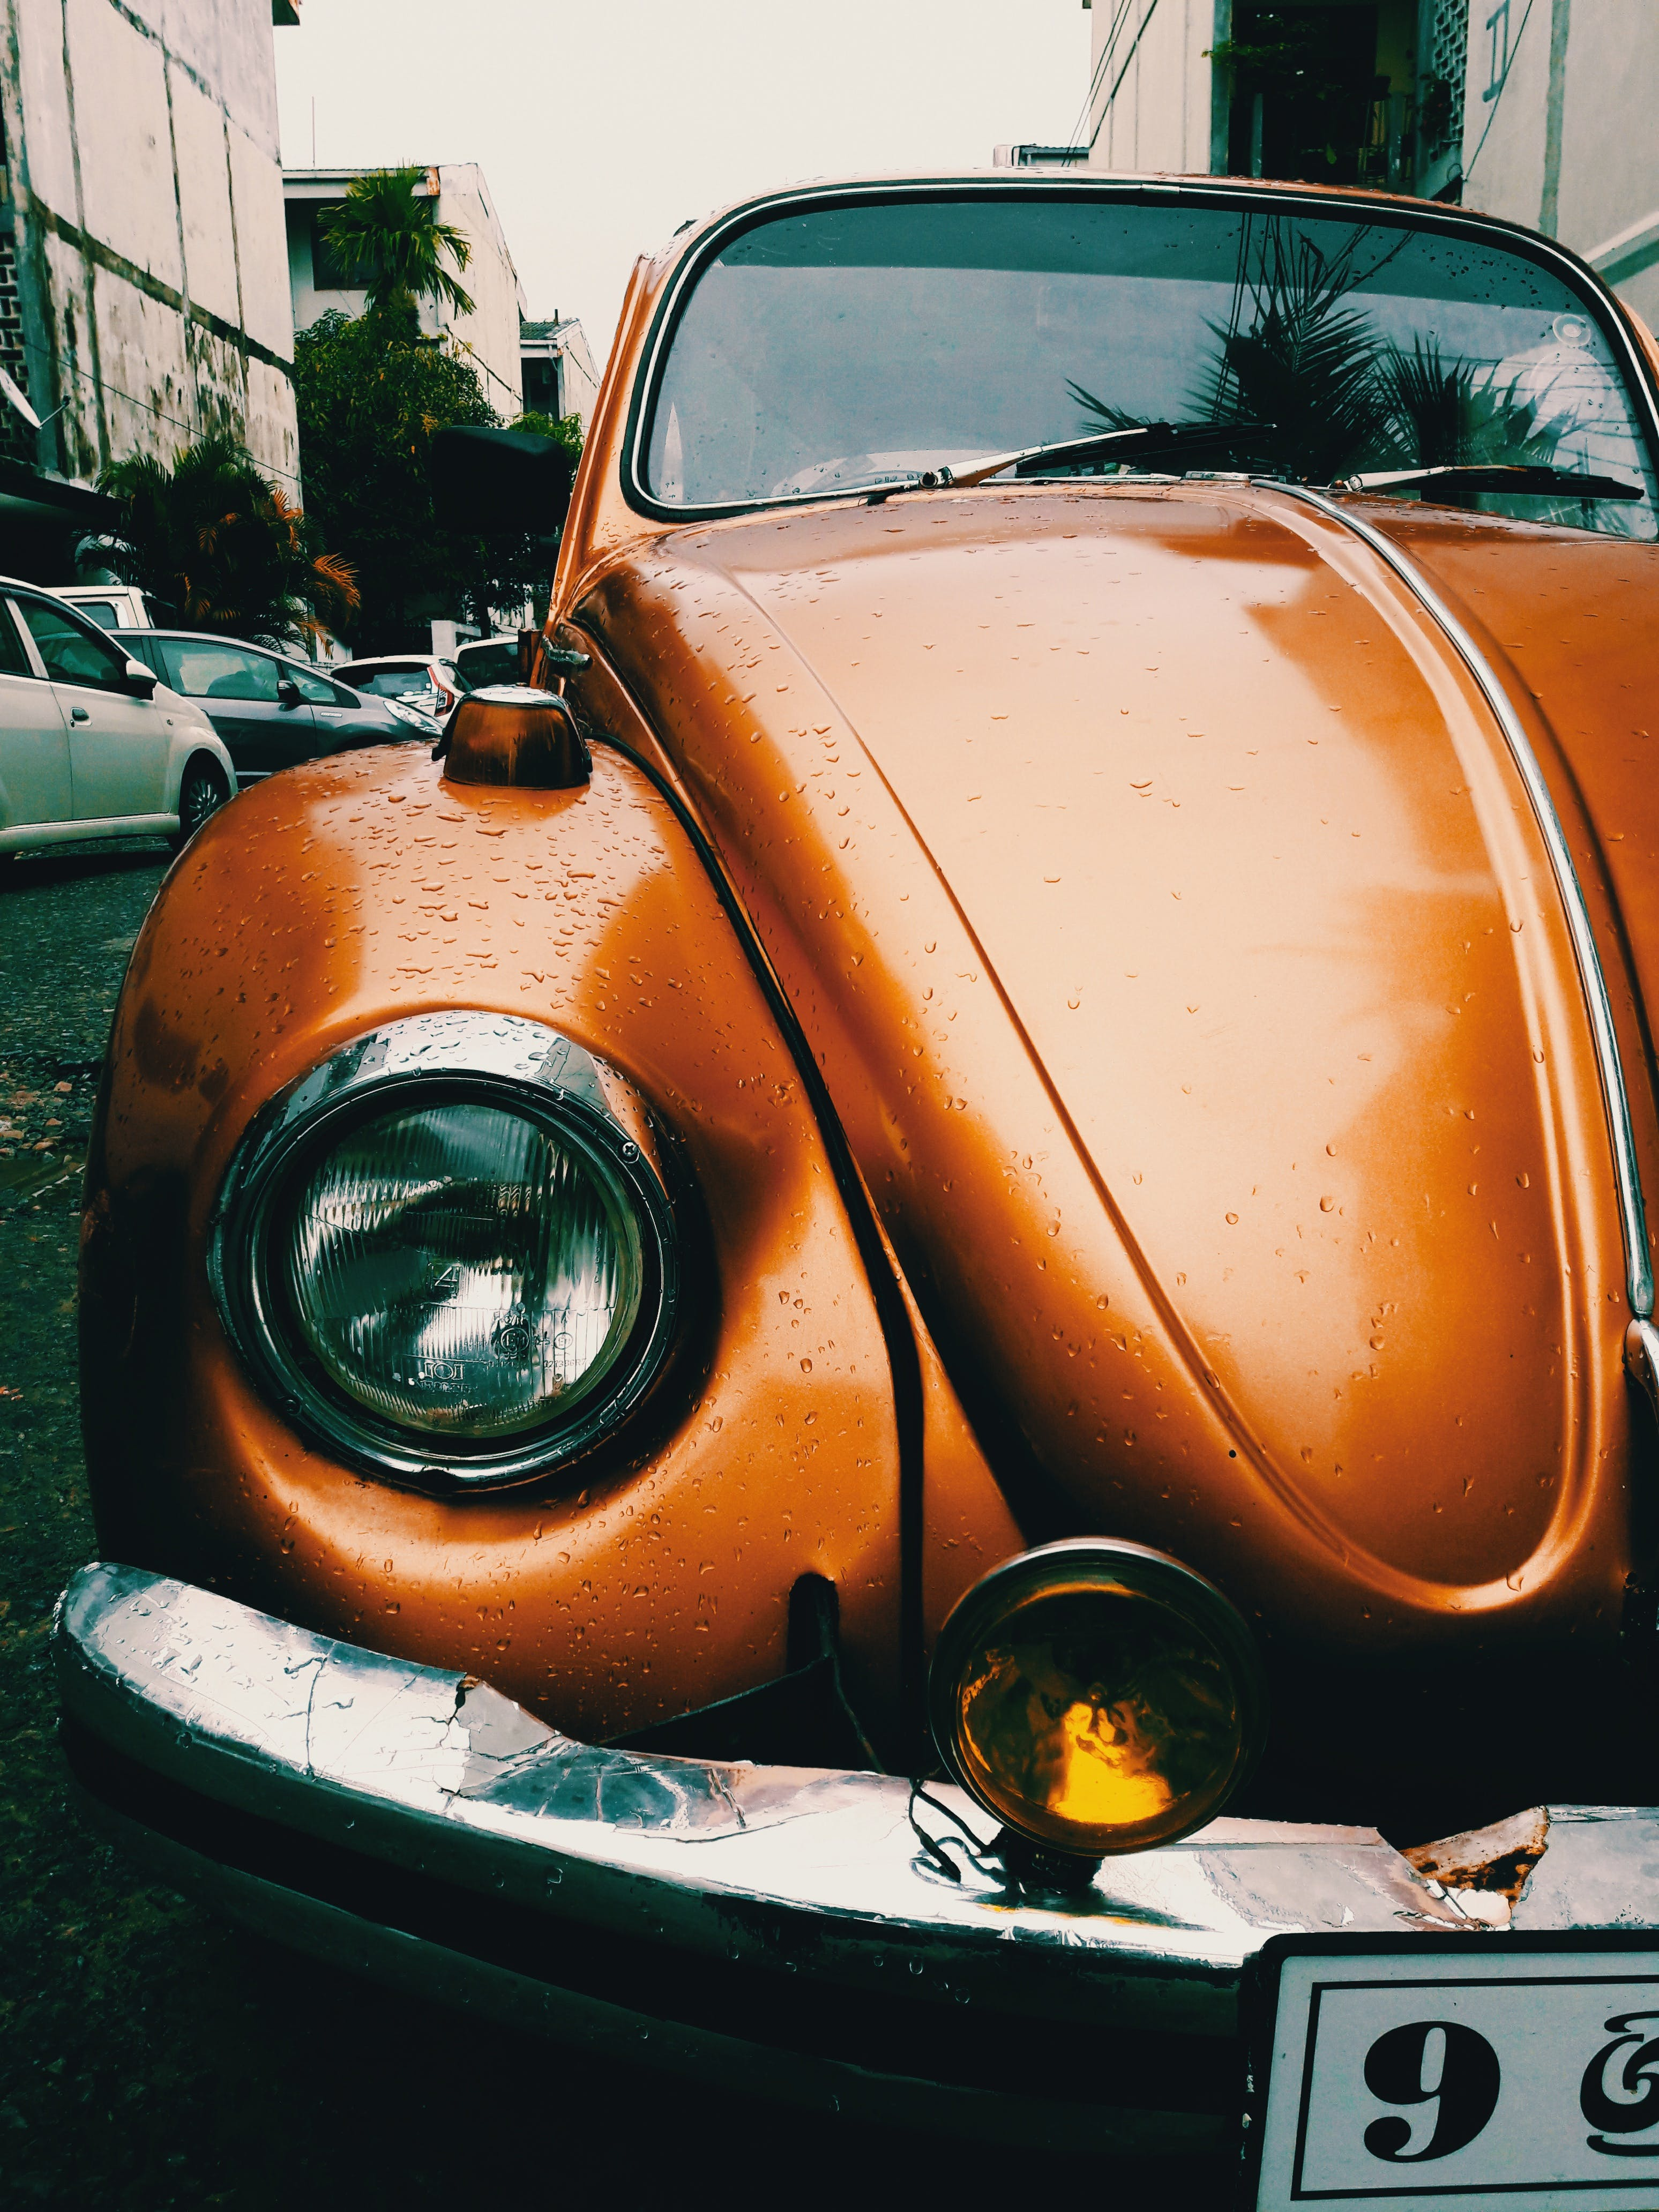 Close-Up Photography of Volkswagen Beetle